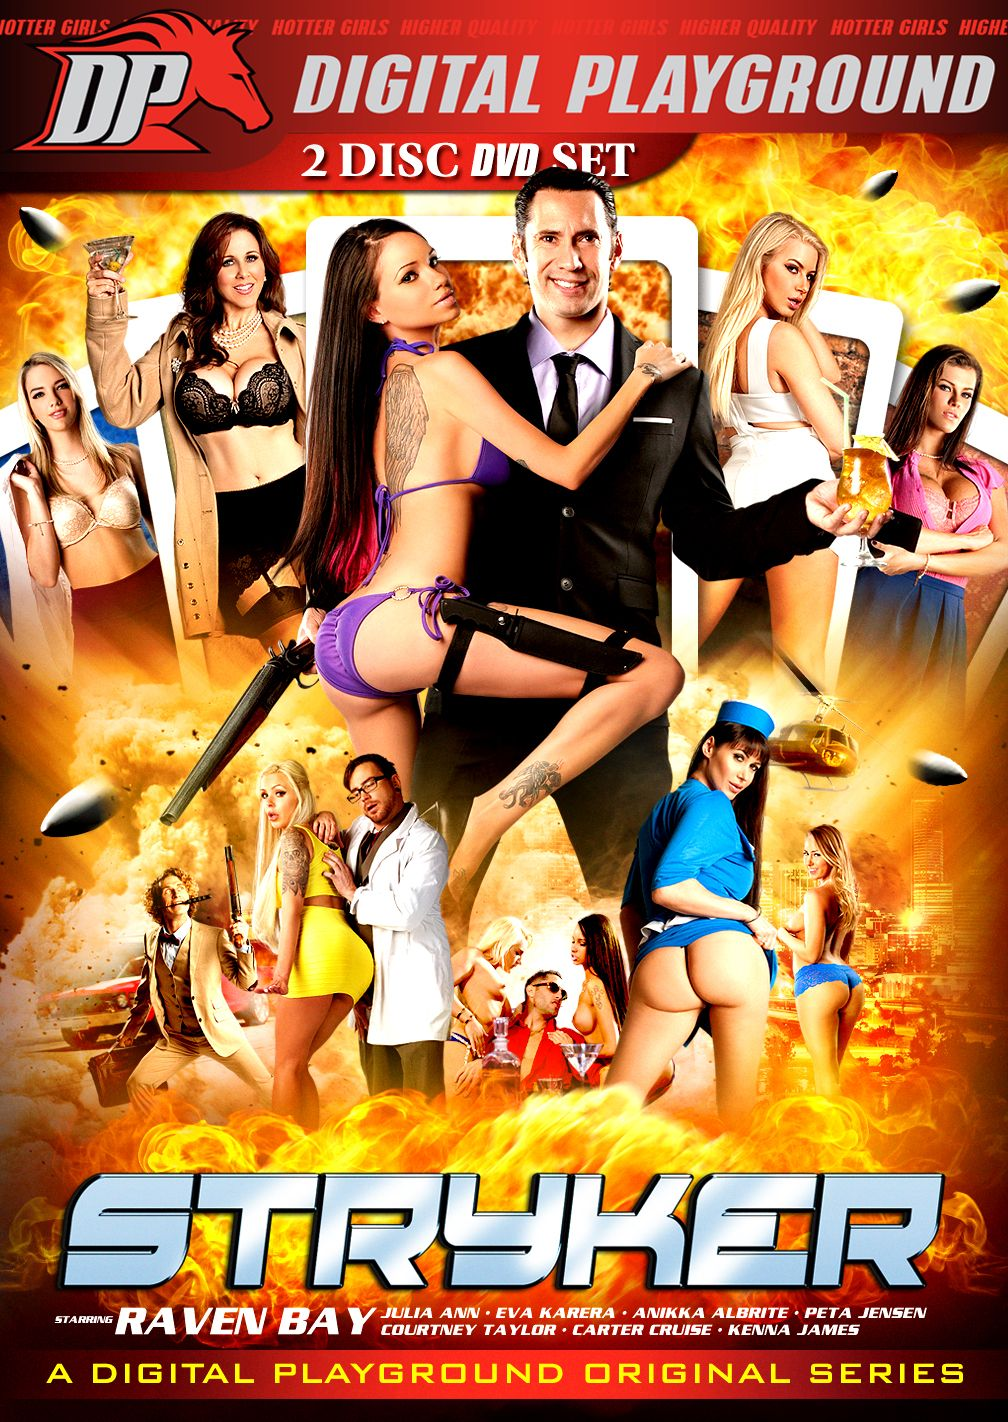 Nonton Film Stryker Digital Playground, Streaming Film -8584